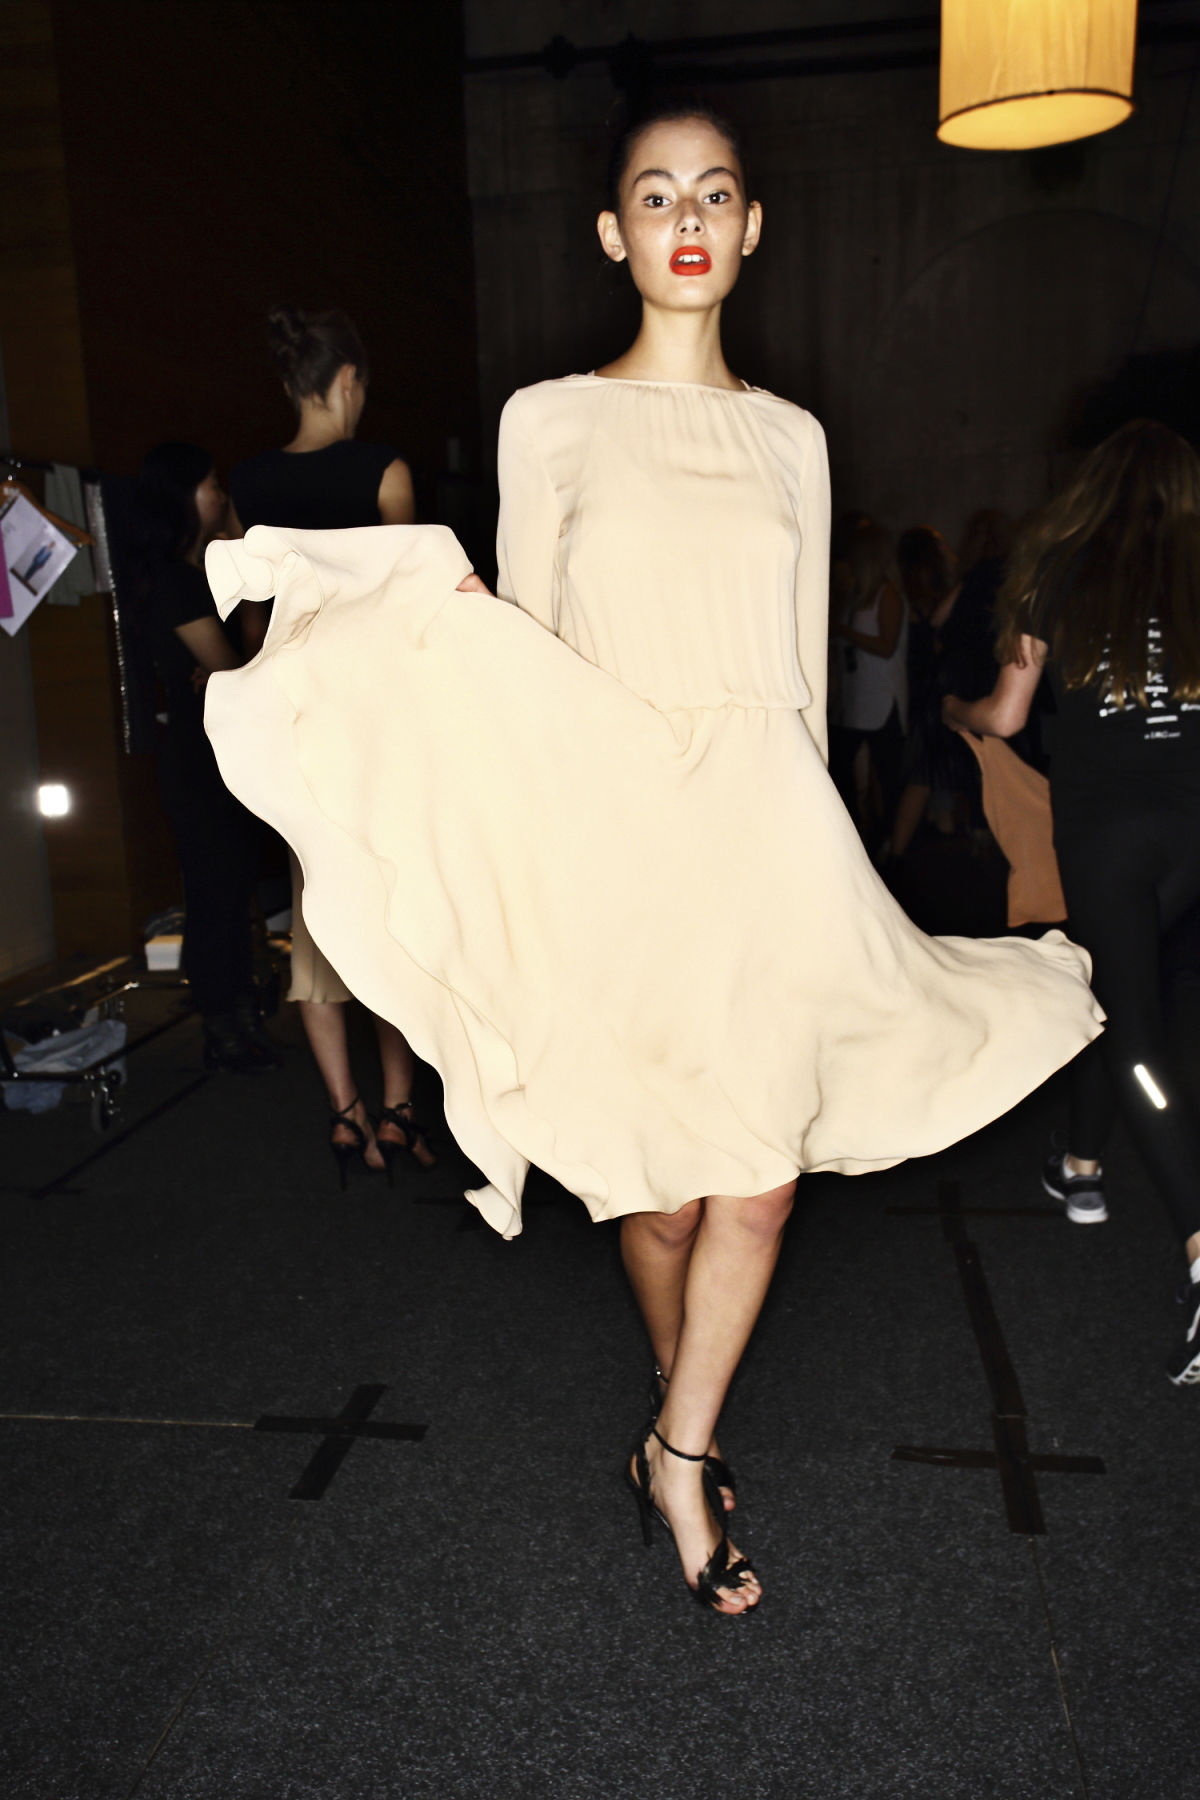 Bianca Spender SS1516 Fashion Show Sydney Backstage